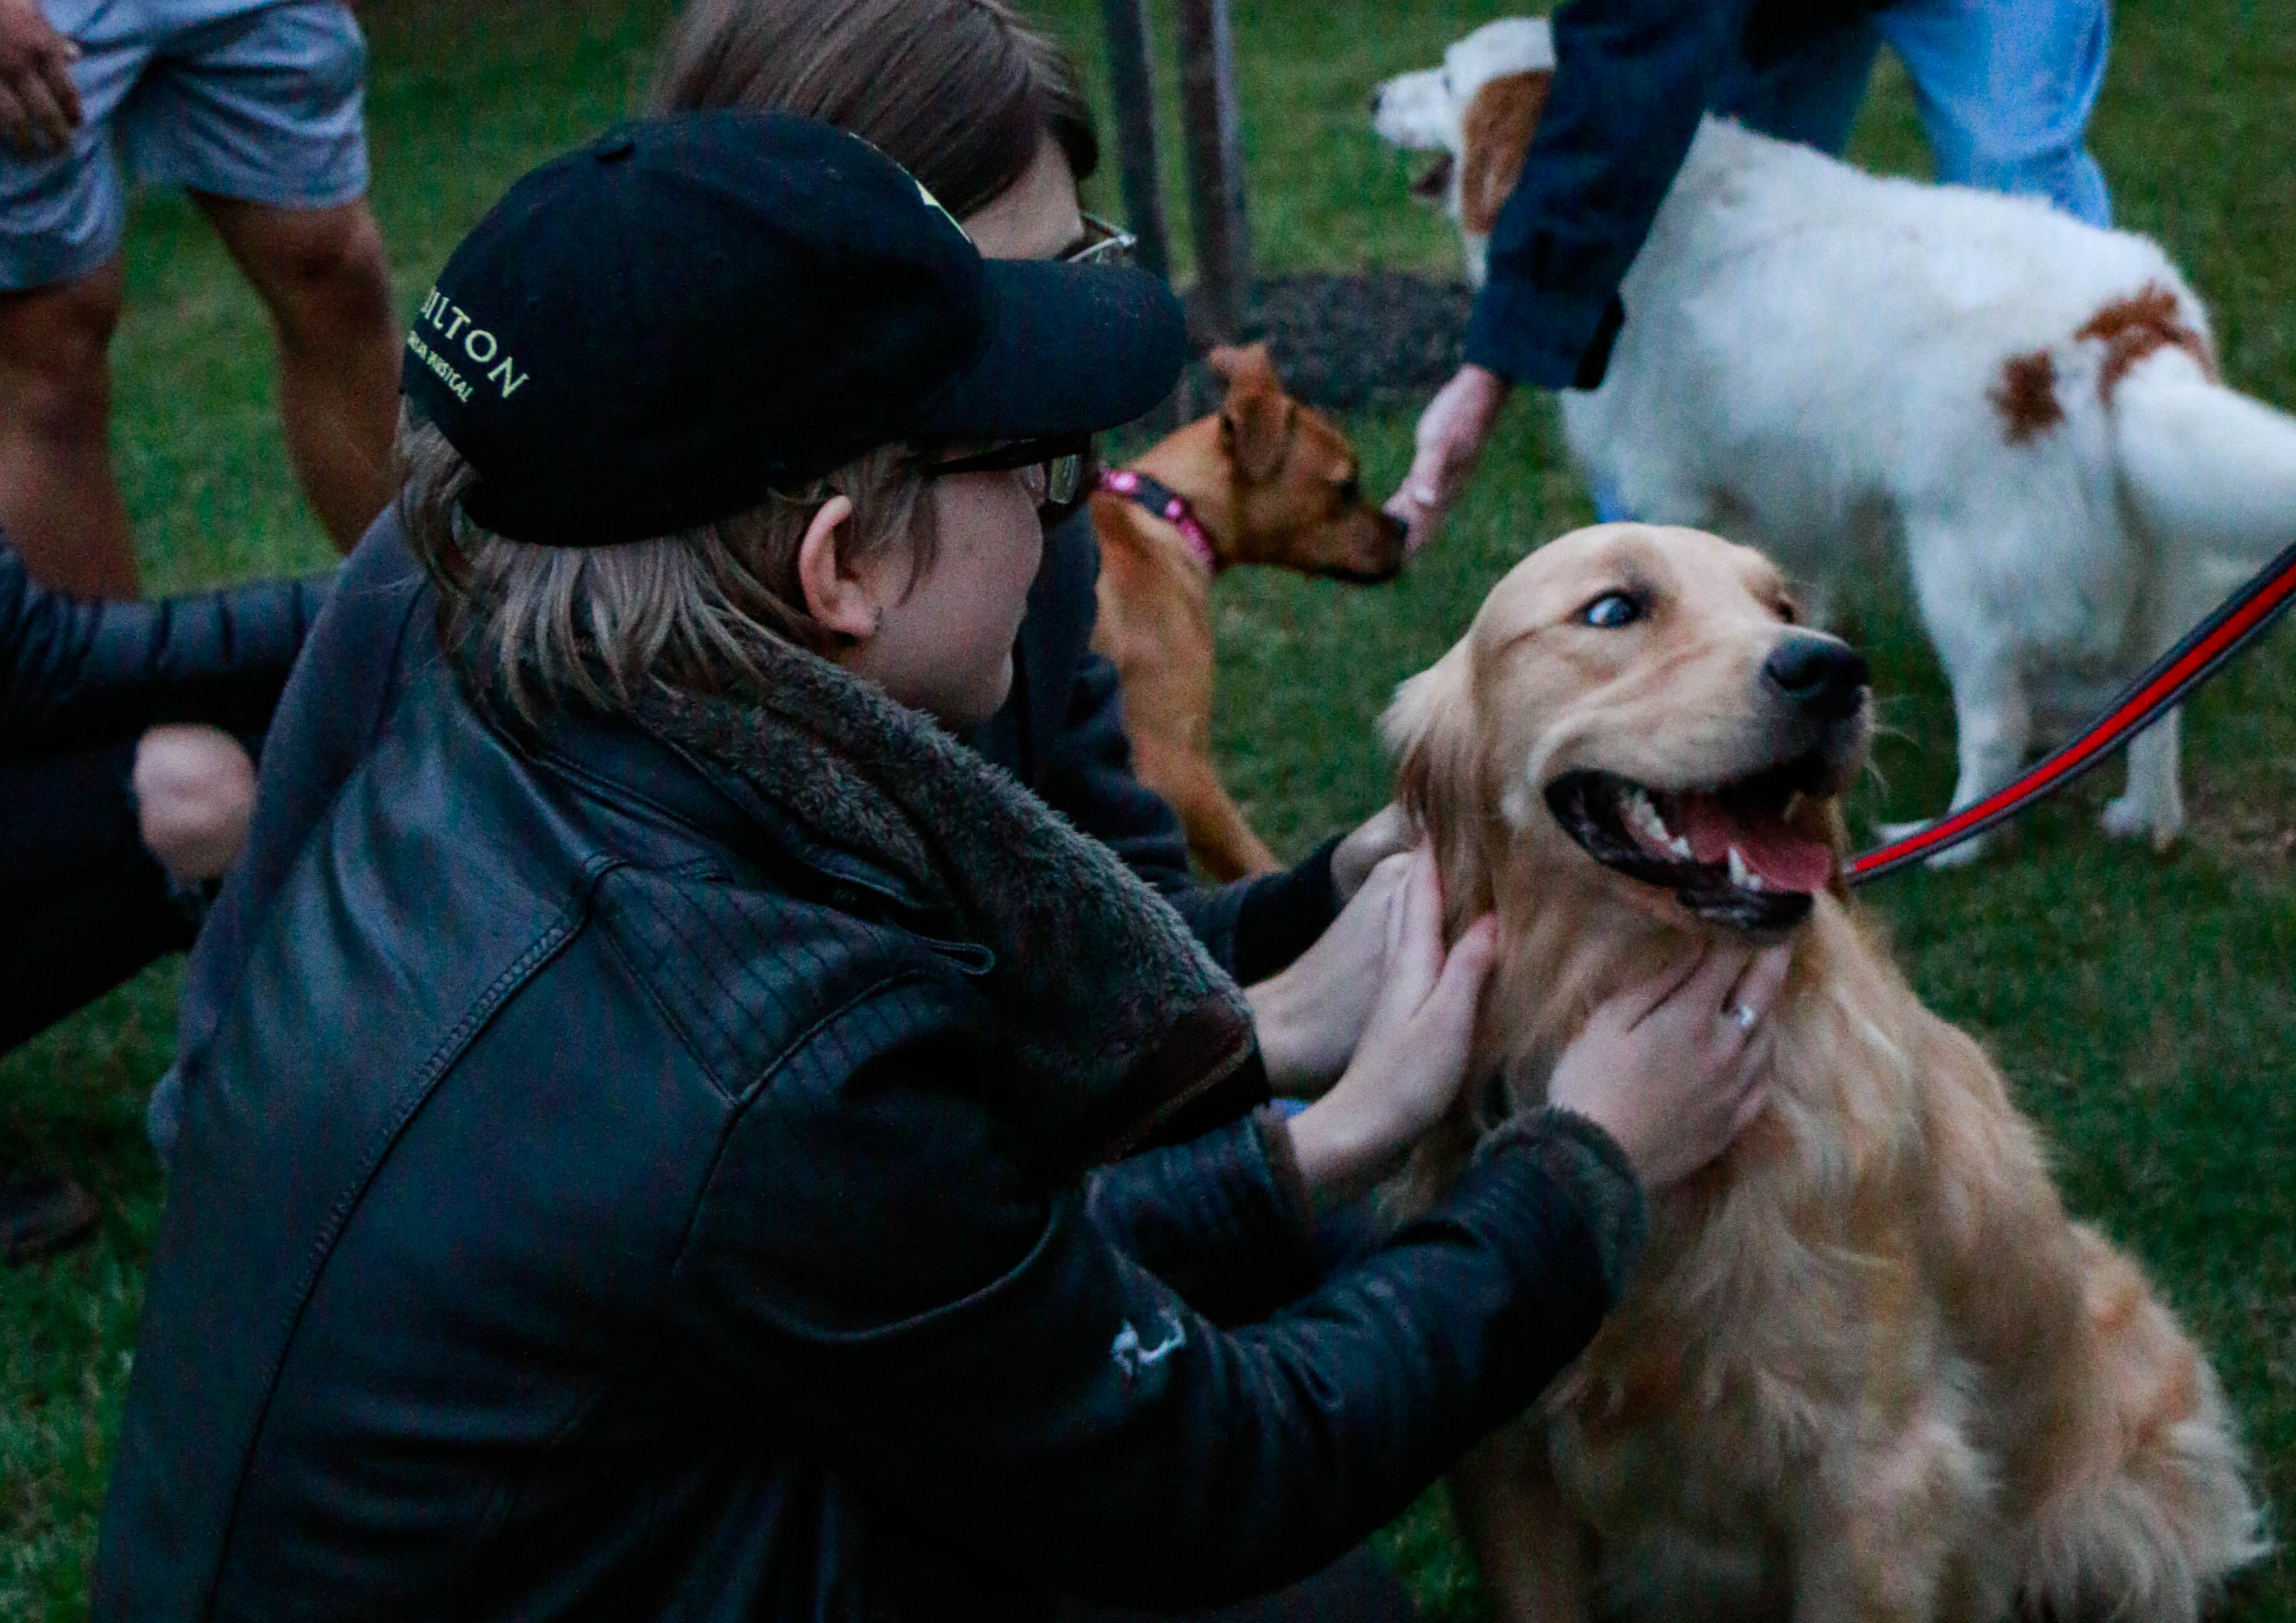 The new CUB also provides an expanded venue for the ever-popular Dog Days (Photo Merlyn Maldonado/The Gettysburgian)